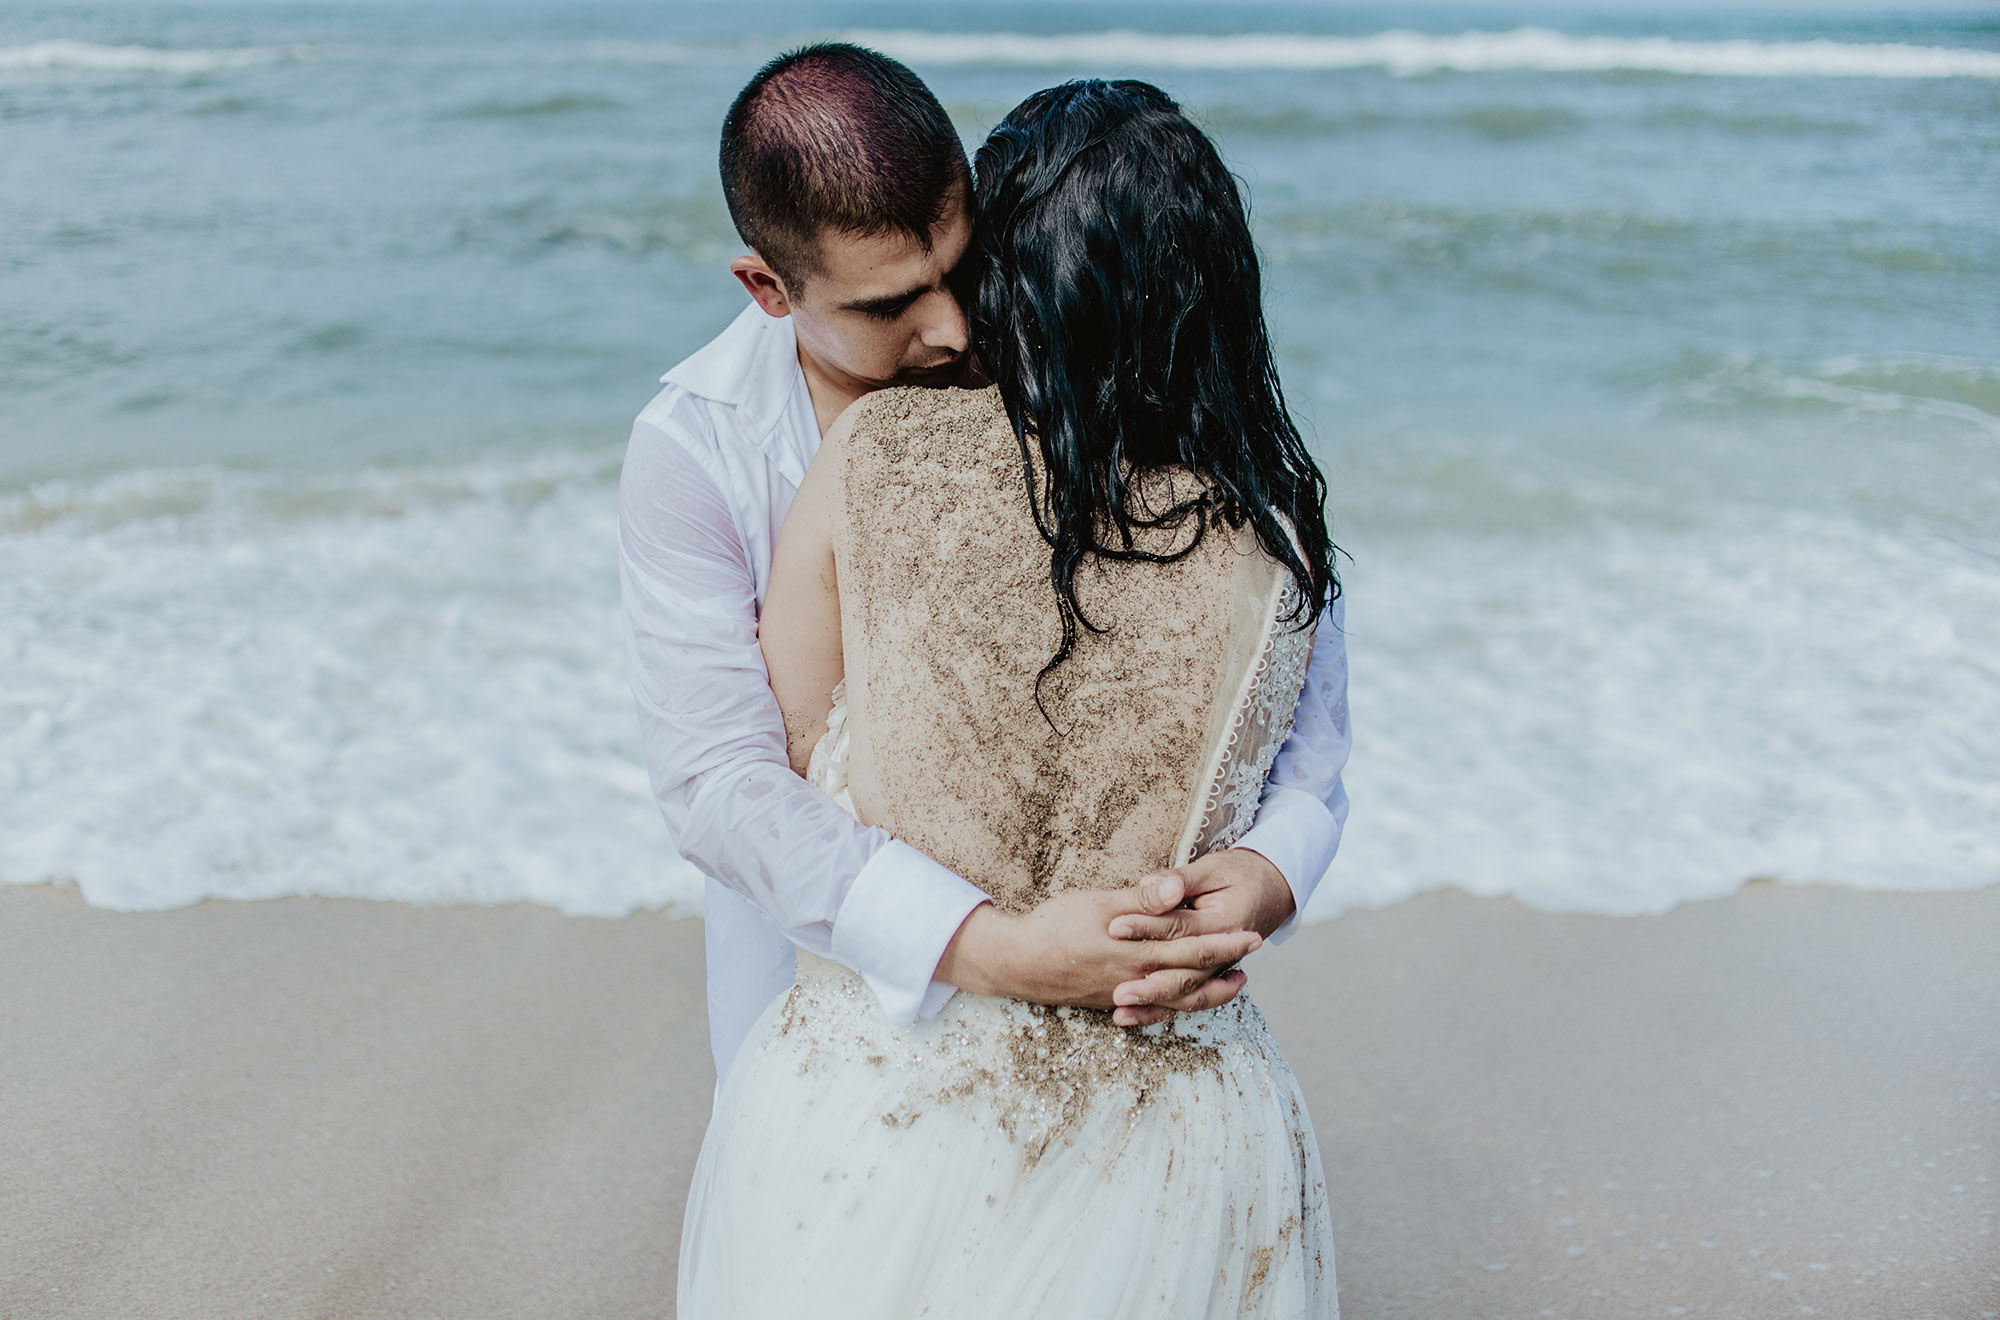 bibi y aldo trash the dress198.jpg